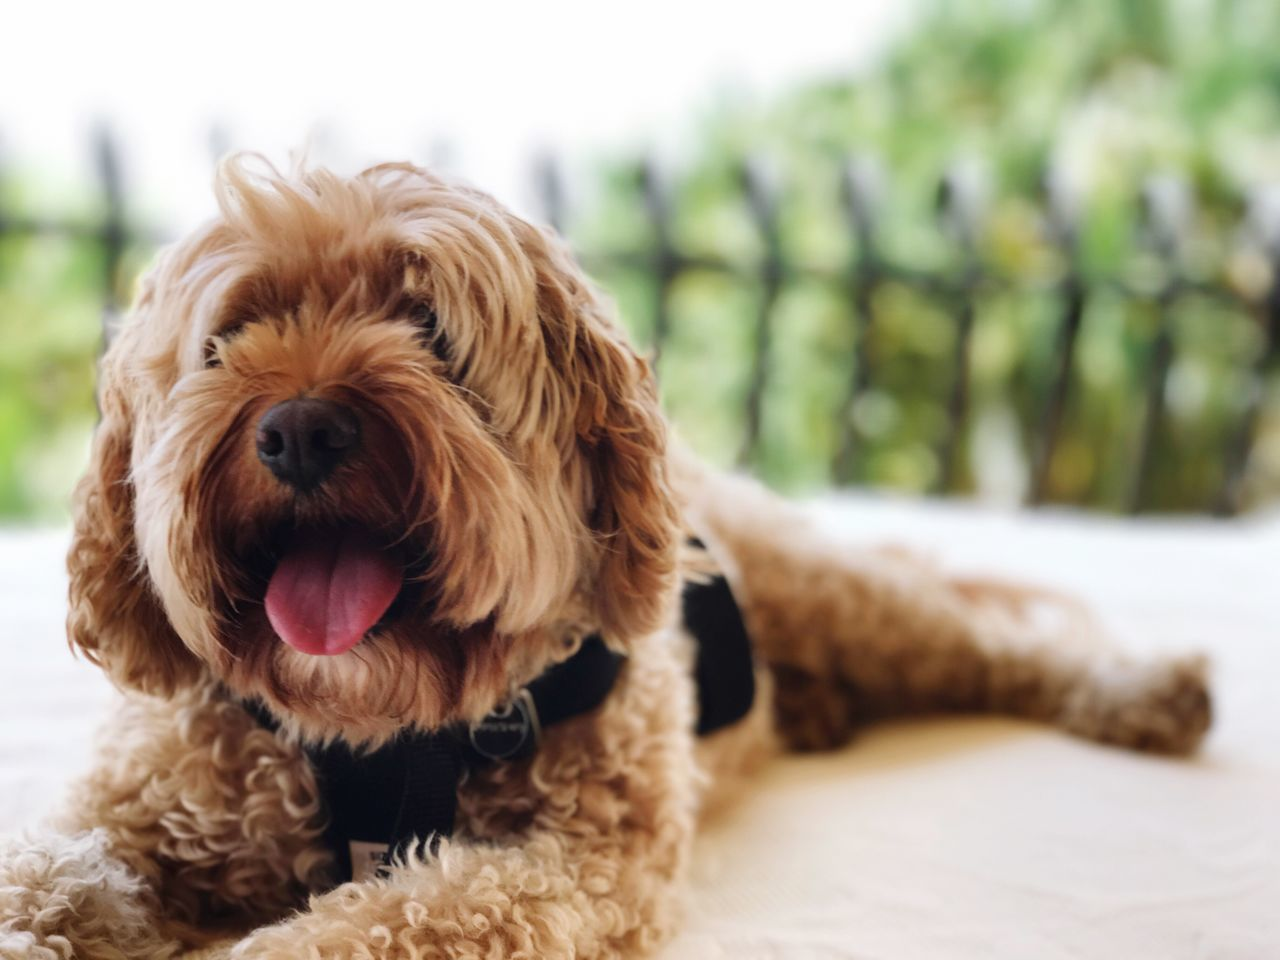 Dog Pets Domestic Animals Dog One Animal Animal Themes Focus On Foreground Mammal Close-up No People Day Nature Outdoors poodle Cavoodle